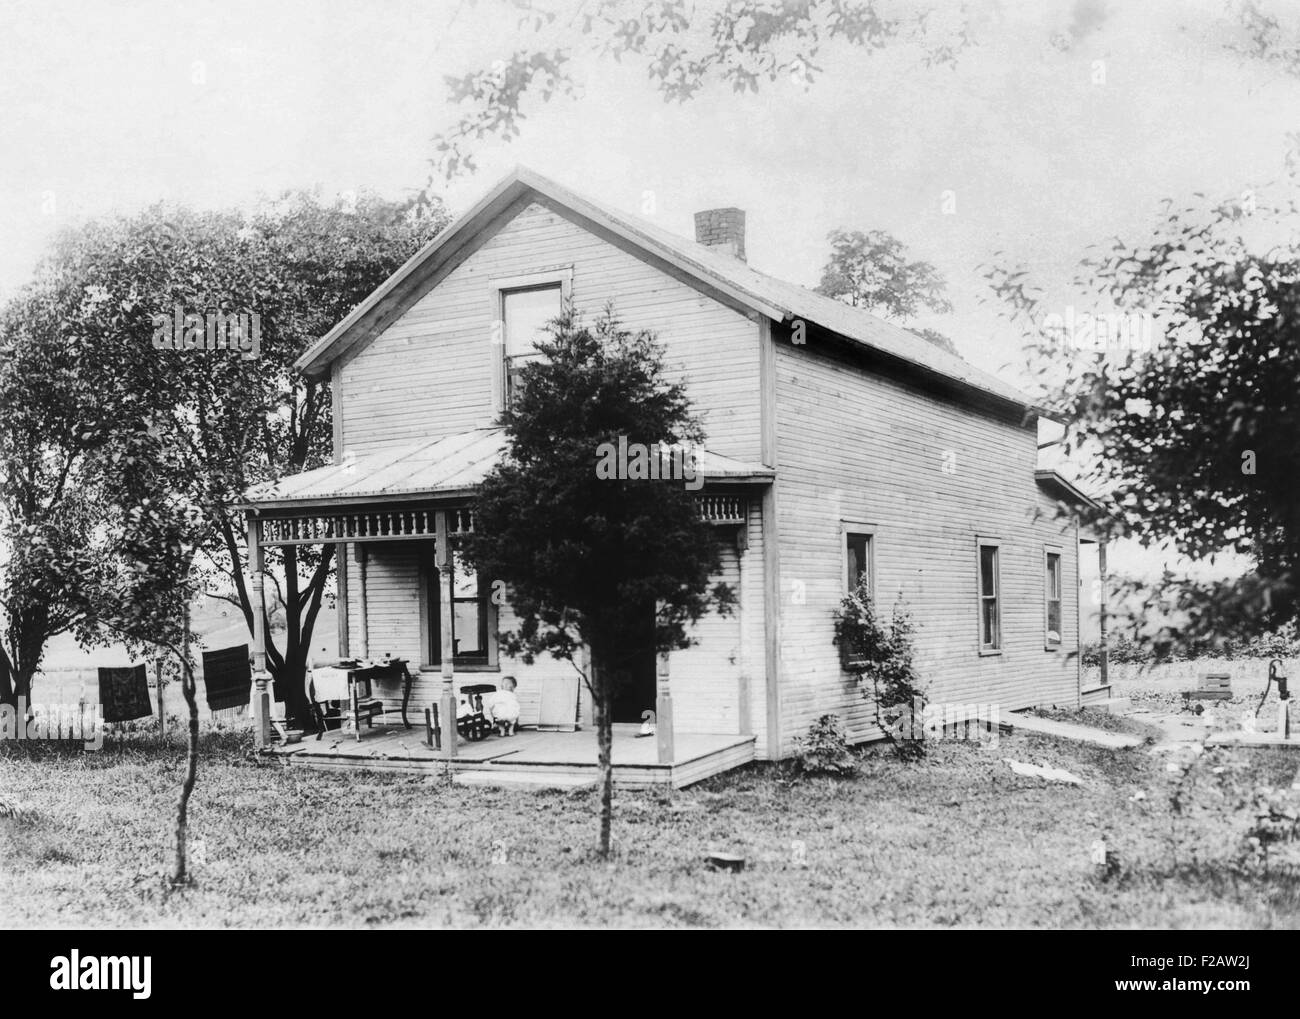 President Warren Harding's birthplace in Blooming Grove, Ohio. Ca. 1880. (CSU_2015_11_1471) - Stock Image